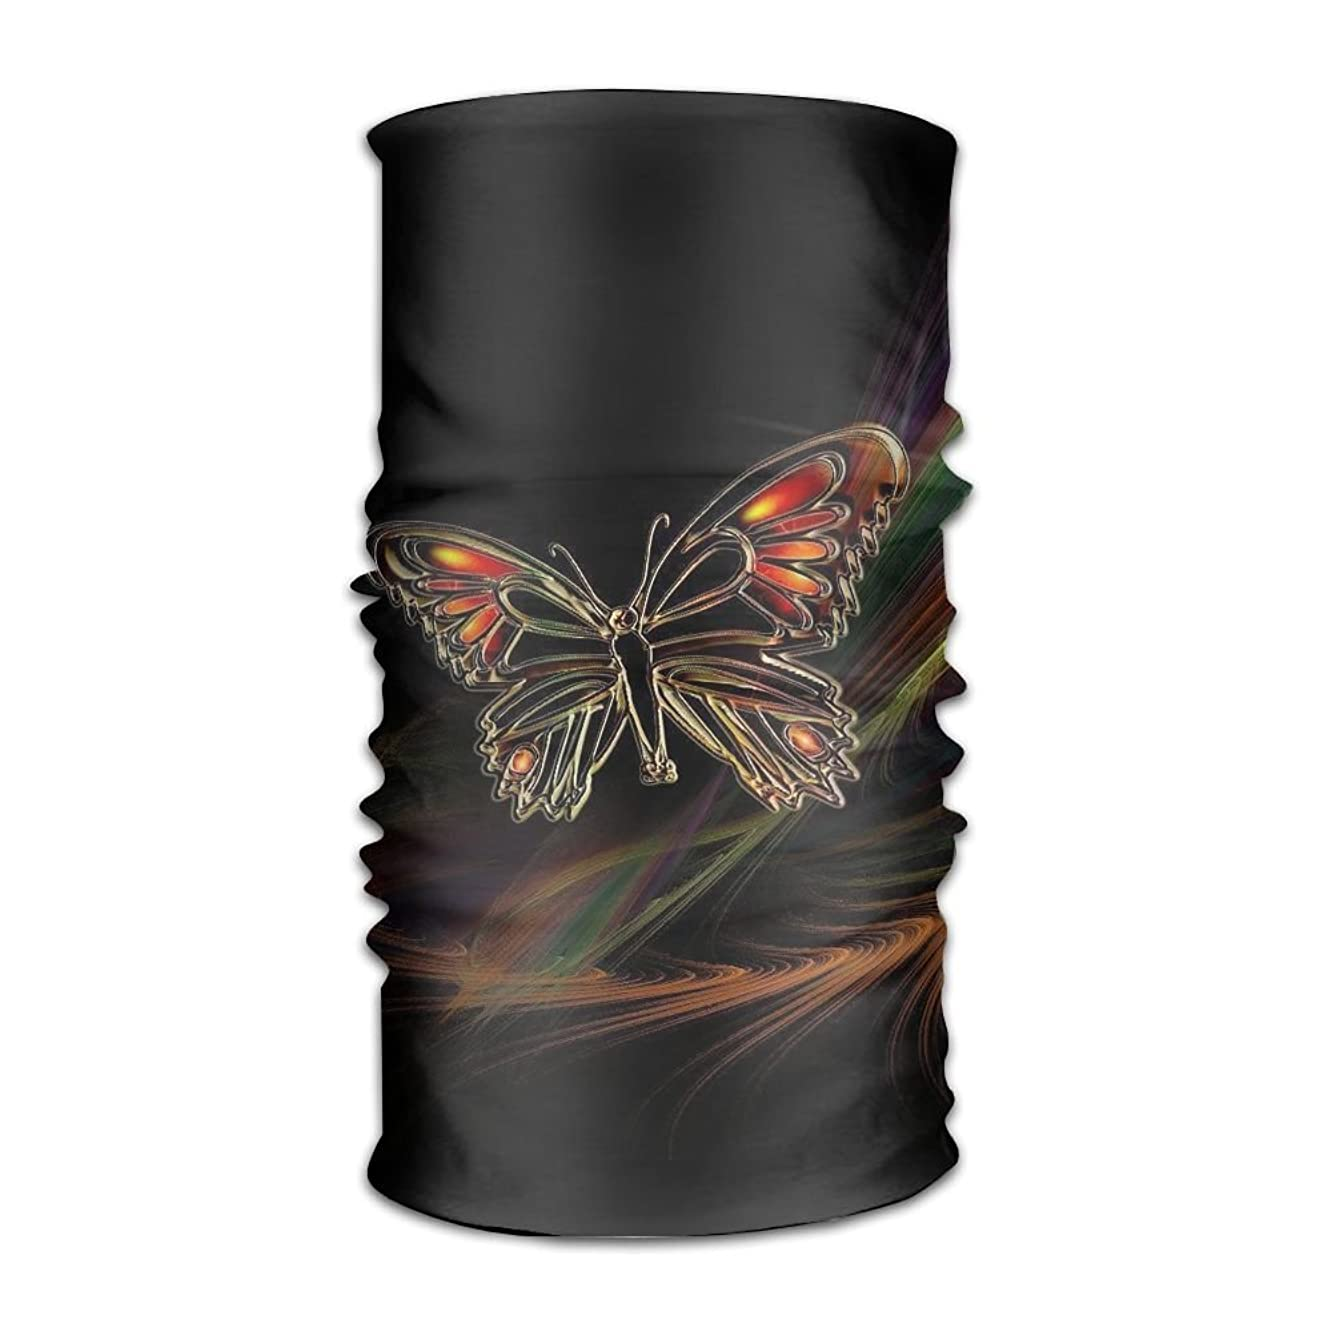 16-in-1 Multifunctional Headwear Magic Scarf Colorful Butterfly Neck Gaiter Headband Bandana For Motorcycle Running Fishing Hiking Workout Yoga Fitness Cycling Exercise